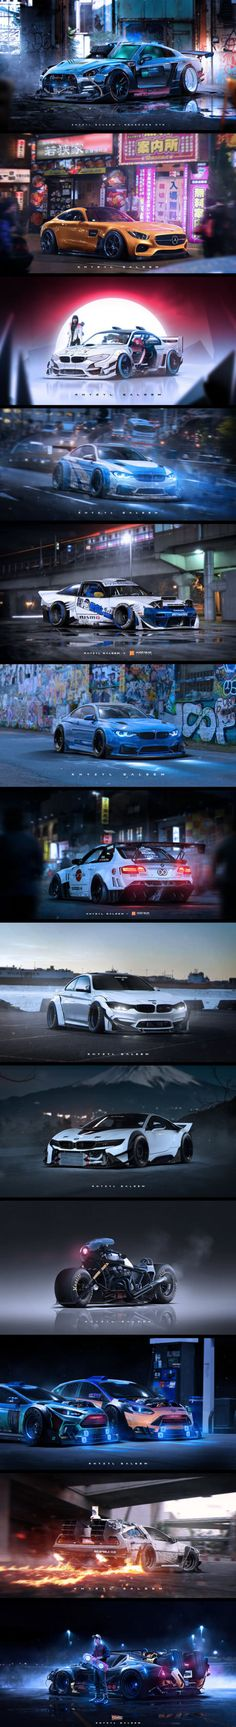 Need For Speed Illustrations Created By Japanese EA Games Publisher